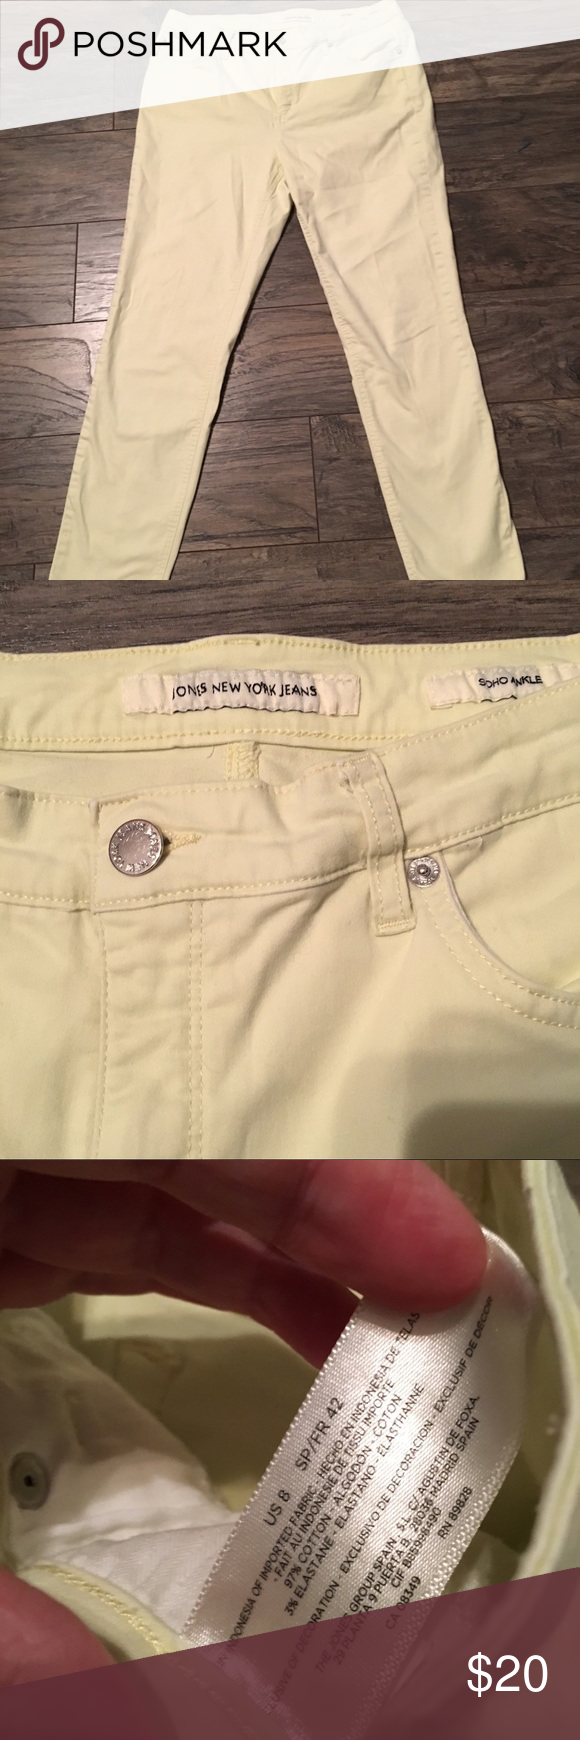 Jones New York Soho Ankle Jeans Pale Yellow Size 8 Jones New York New York Soho Ankle Jeans